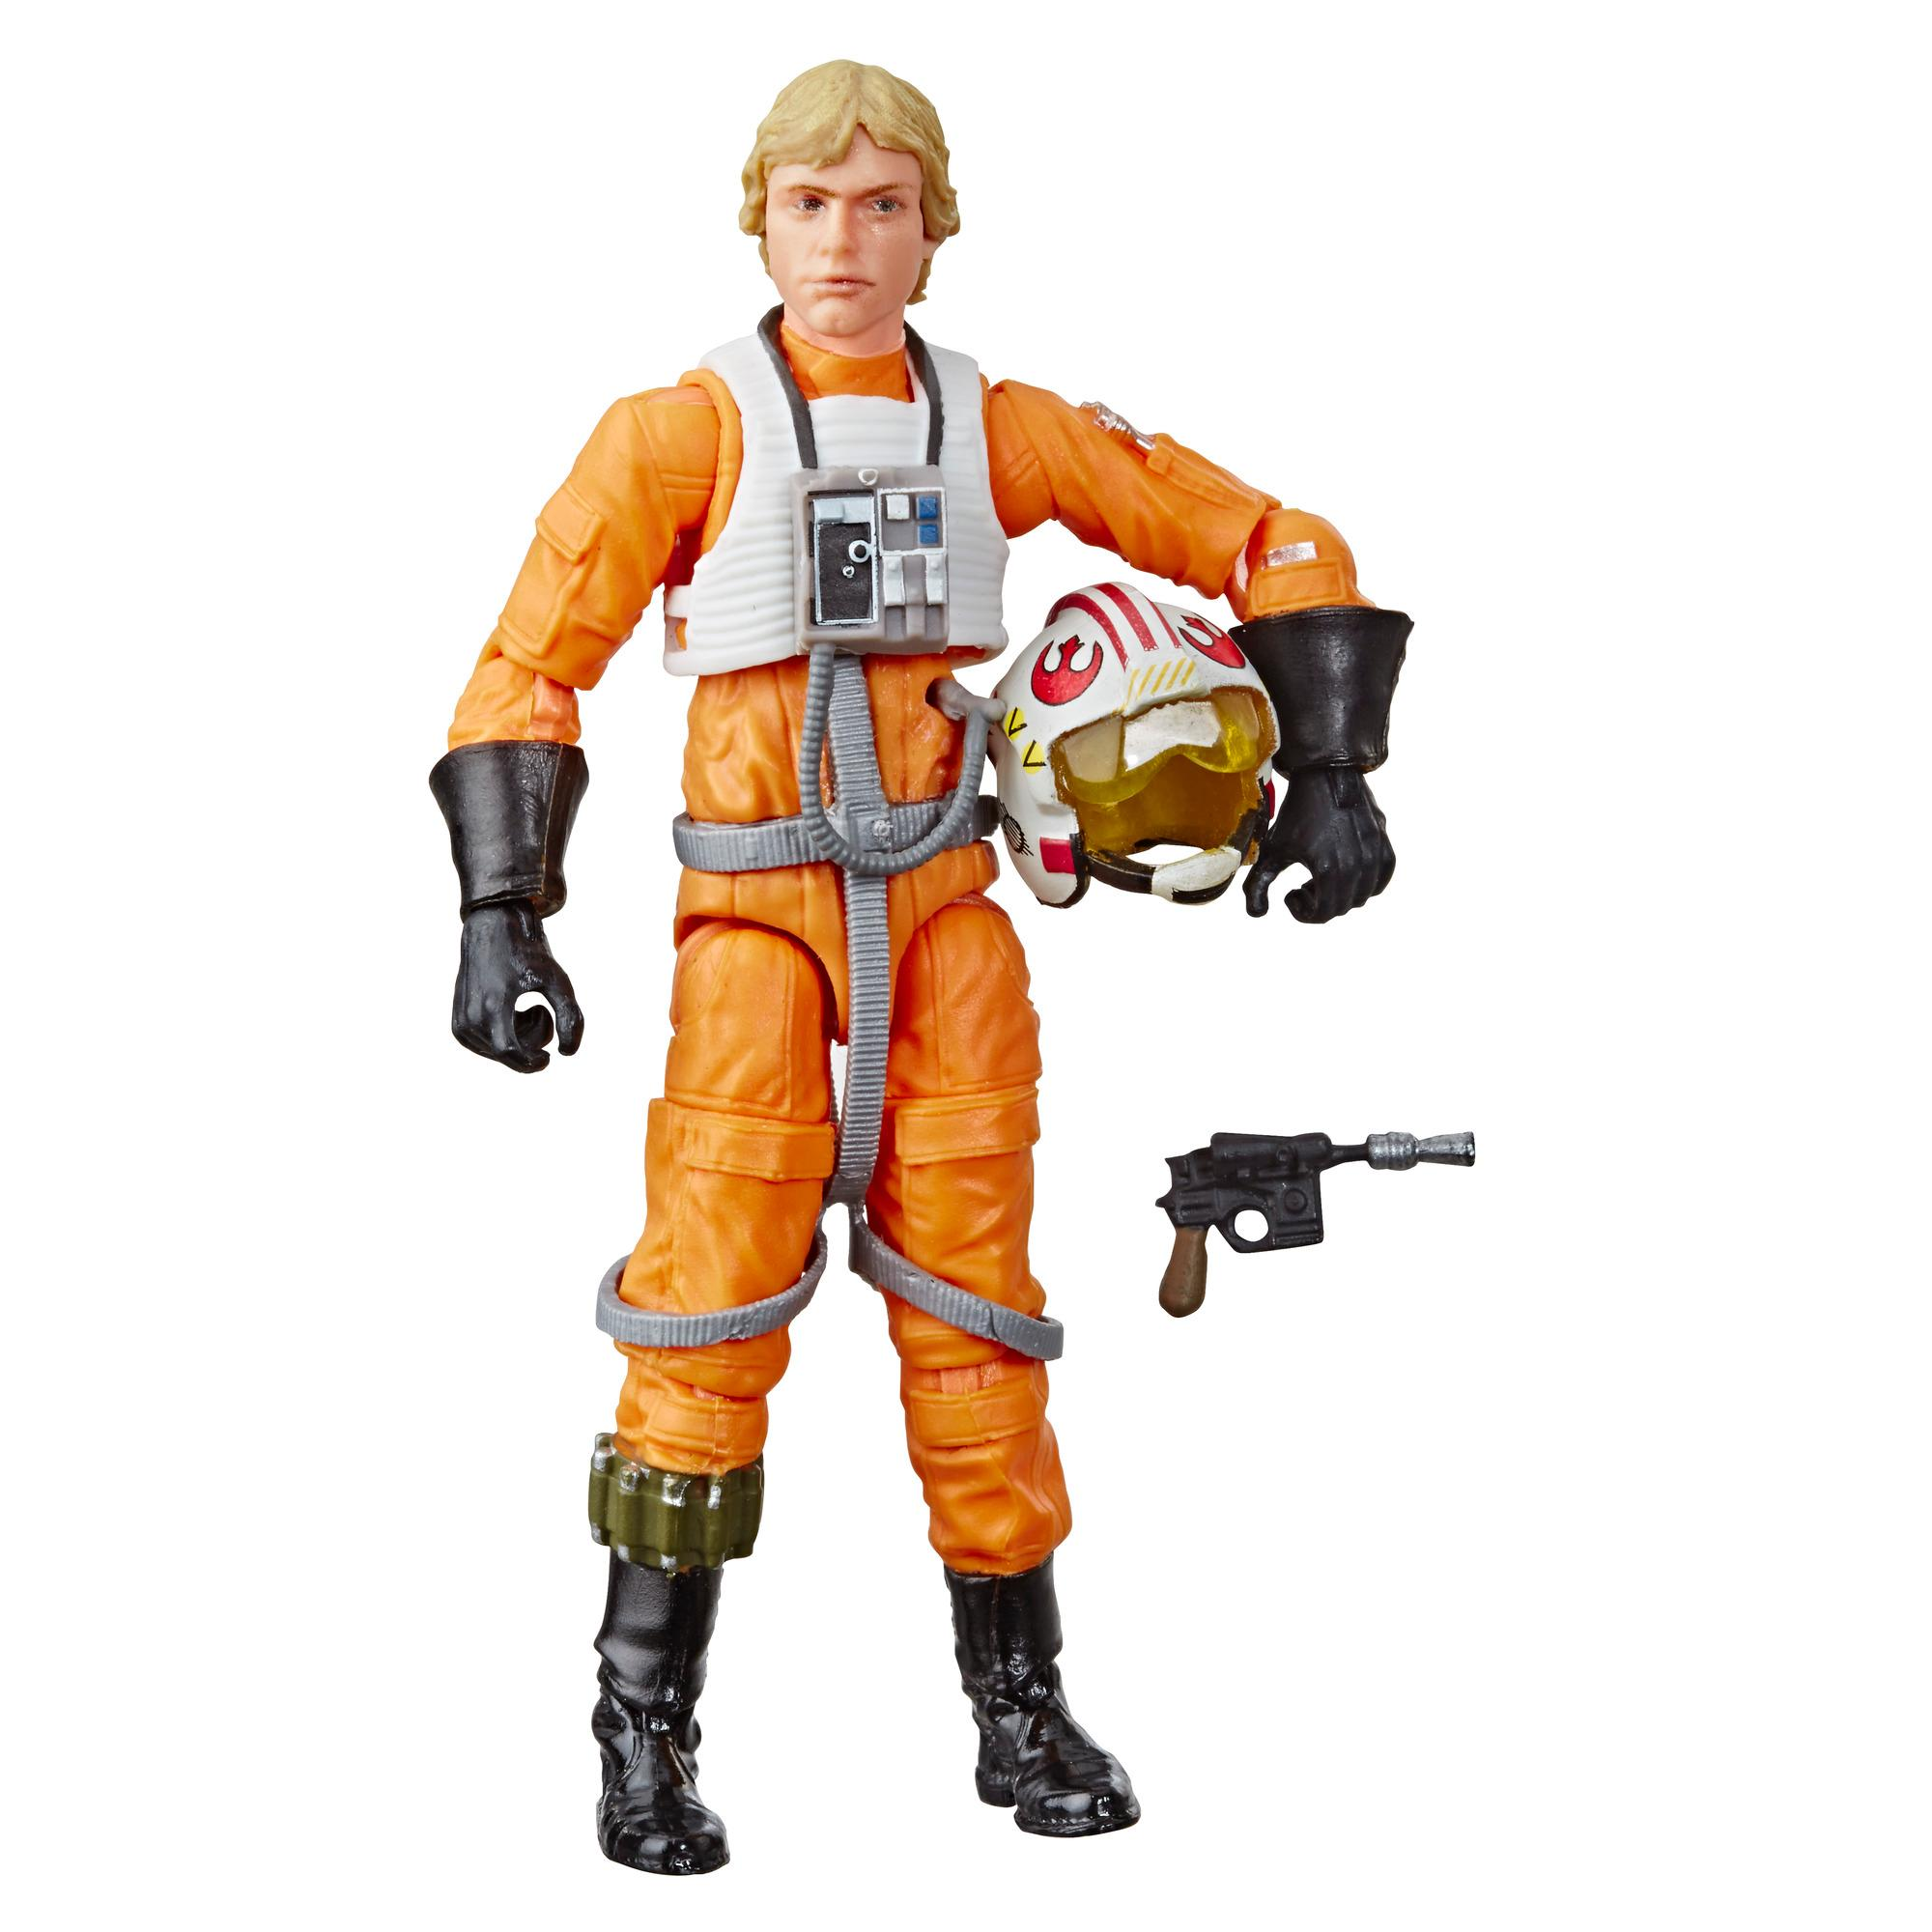 Star Wars The Vintage Collection Star Wars: A New Hope Luke Skywalker Toy, 3.75-inch Scale Figure, Kids Ages 4 and Up